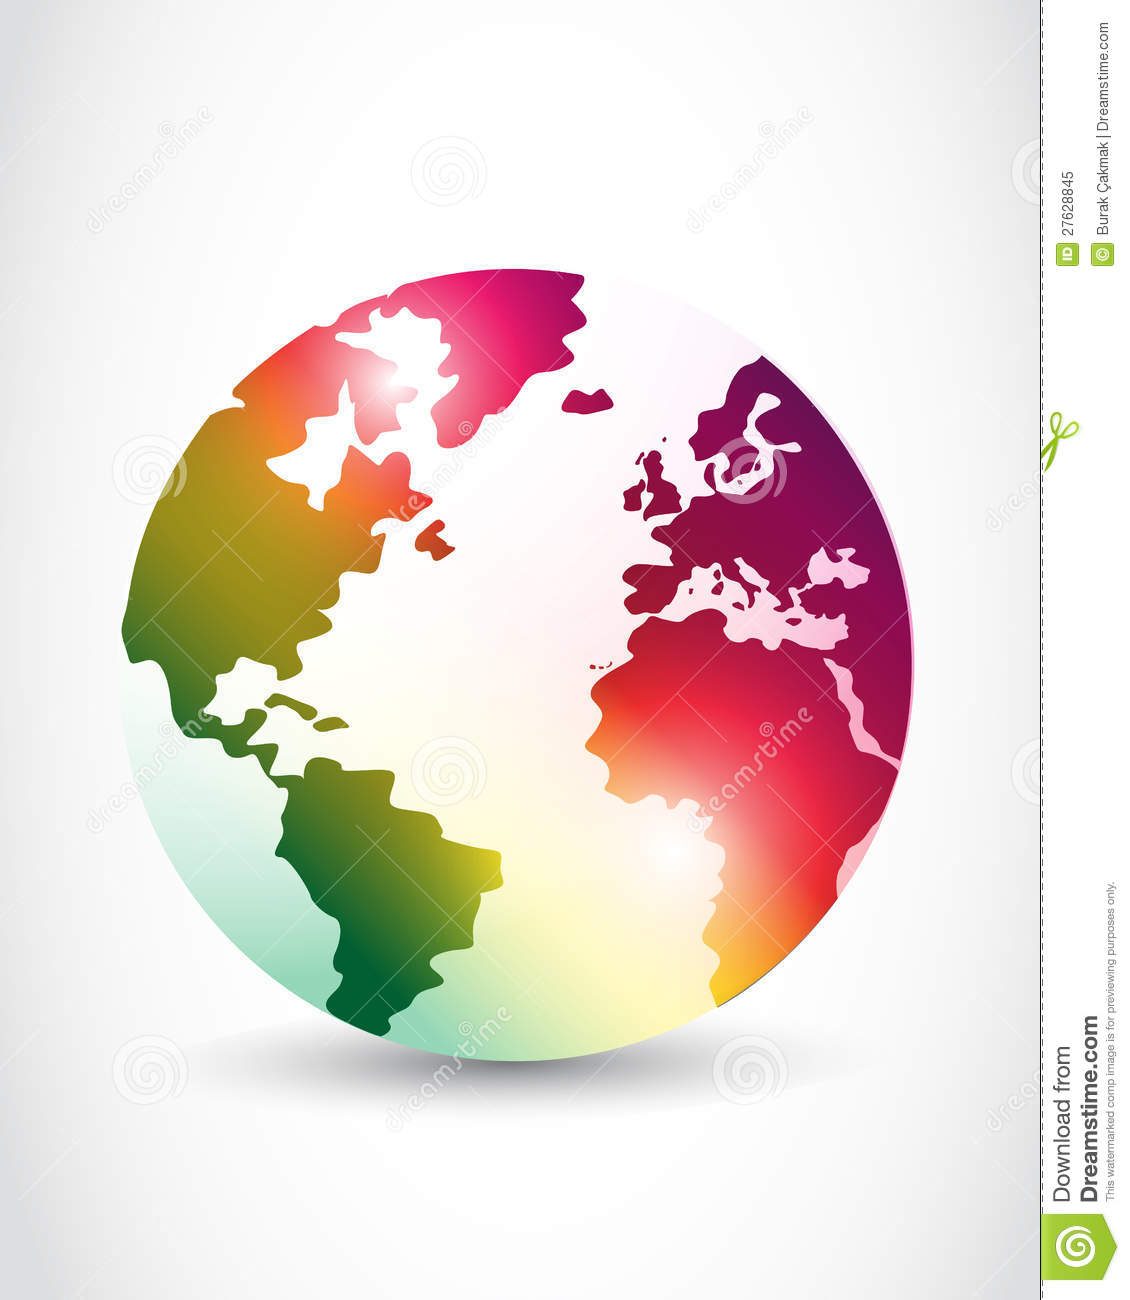 Abstract Colorful World Design Royalty Free Stock Photo - Image ...